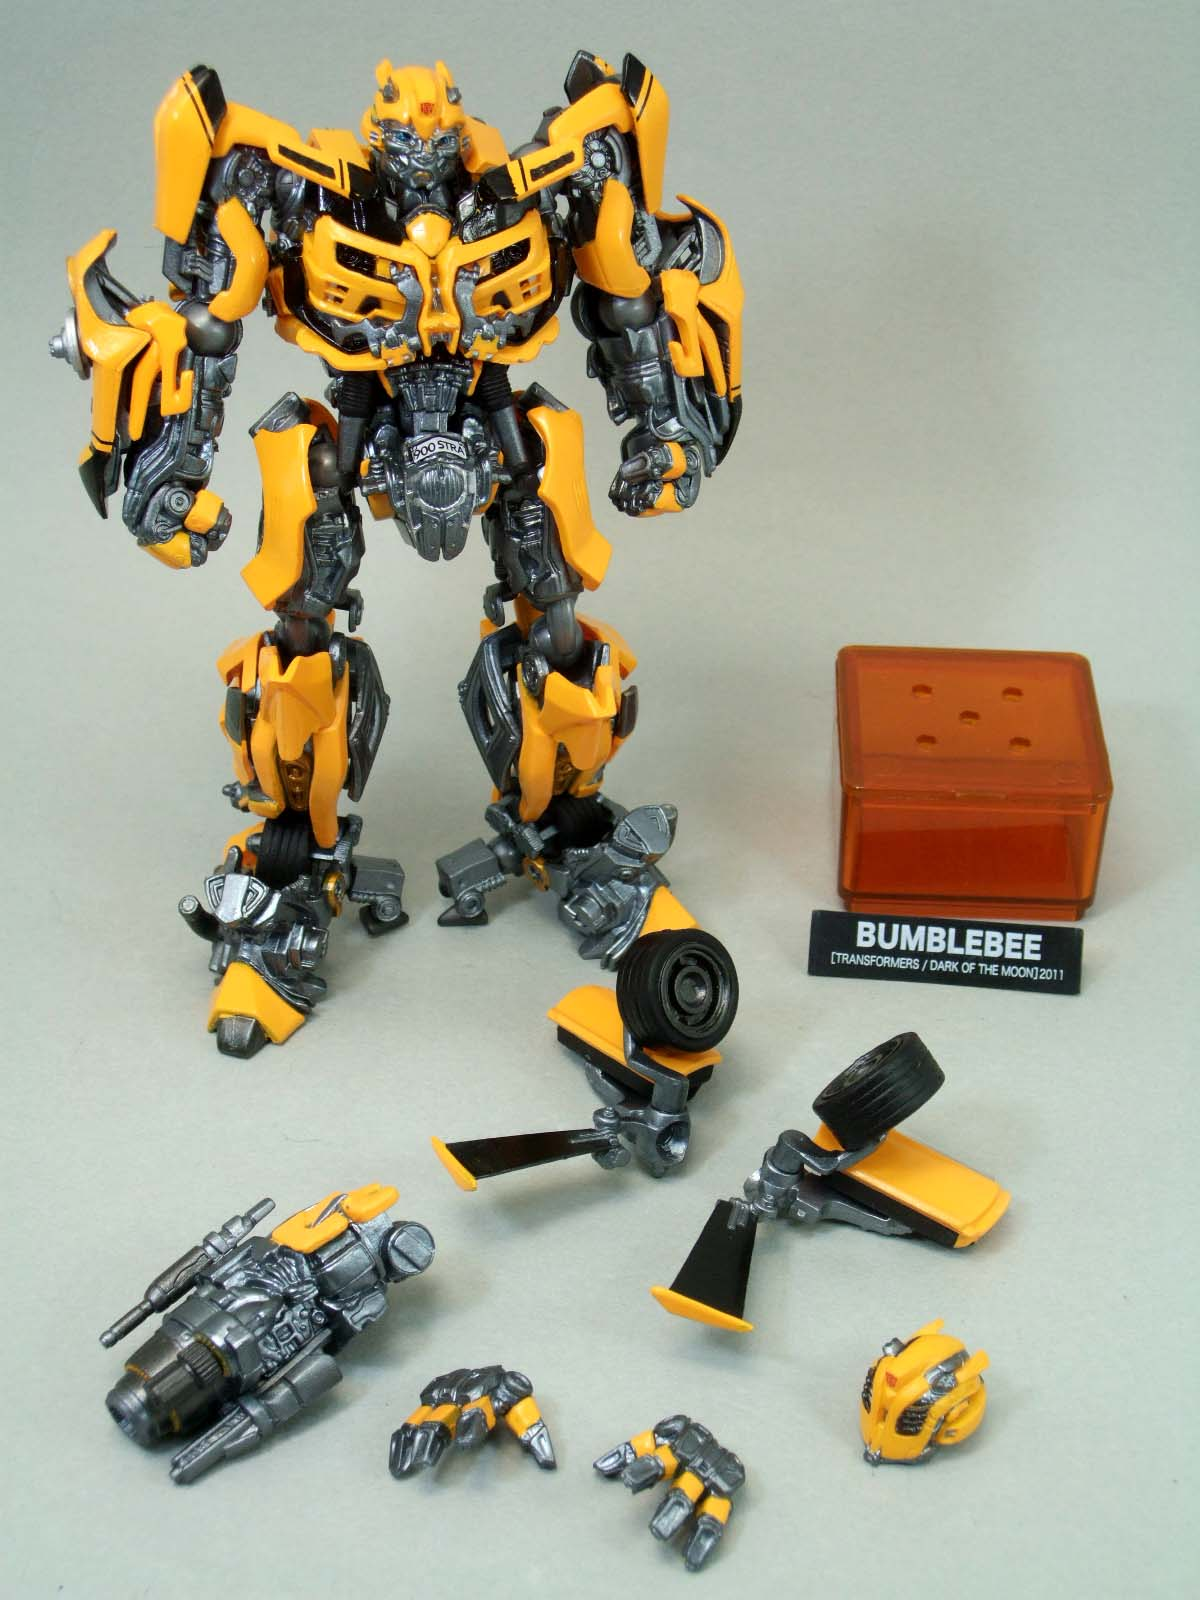 Sci Fi Transformer : Sci fi revoltech bumblebee in hand images transformers